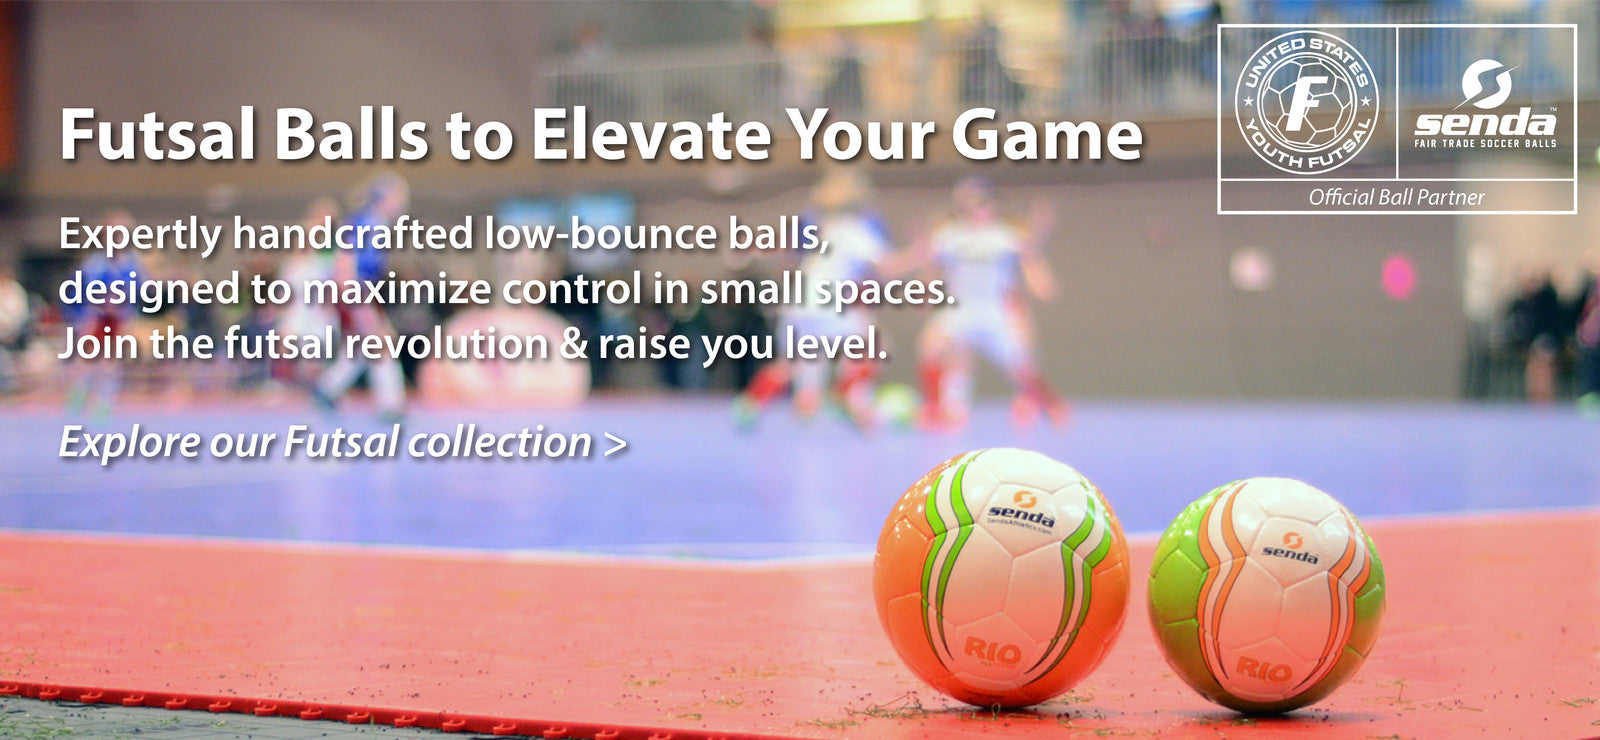 Futsal Balls to Elevate Your Game